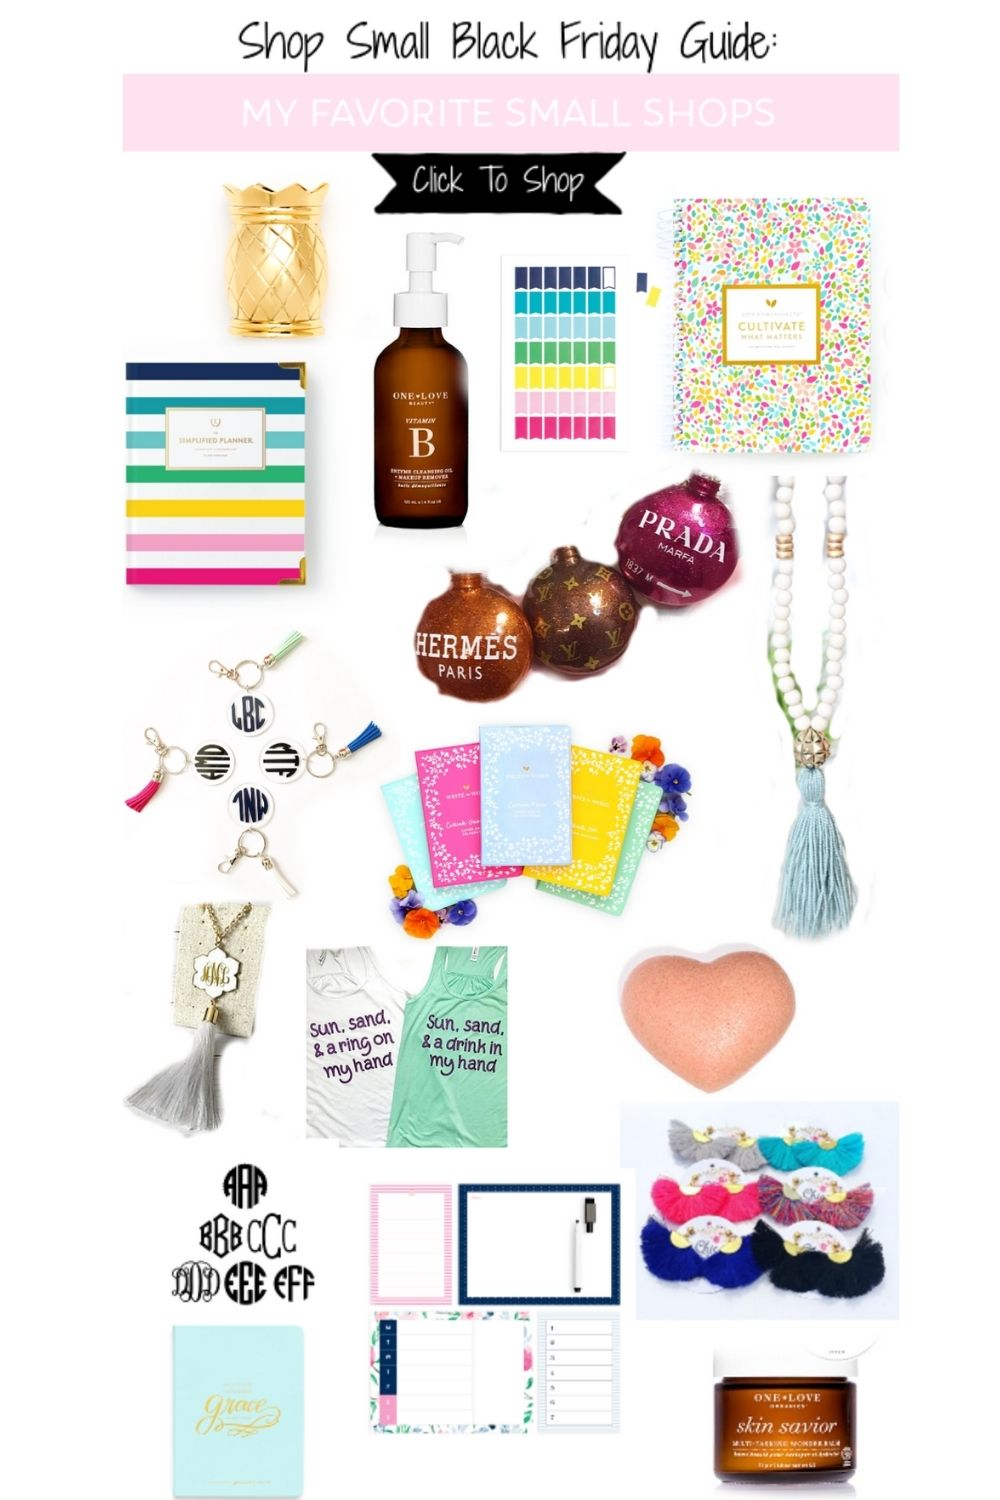 Shop Small Black Friday Gift Guide